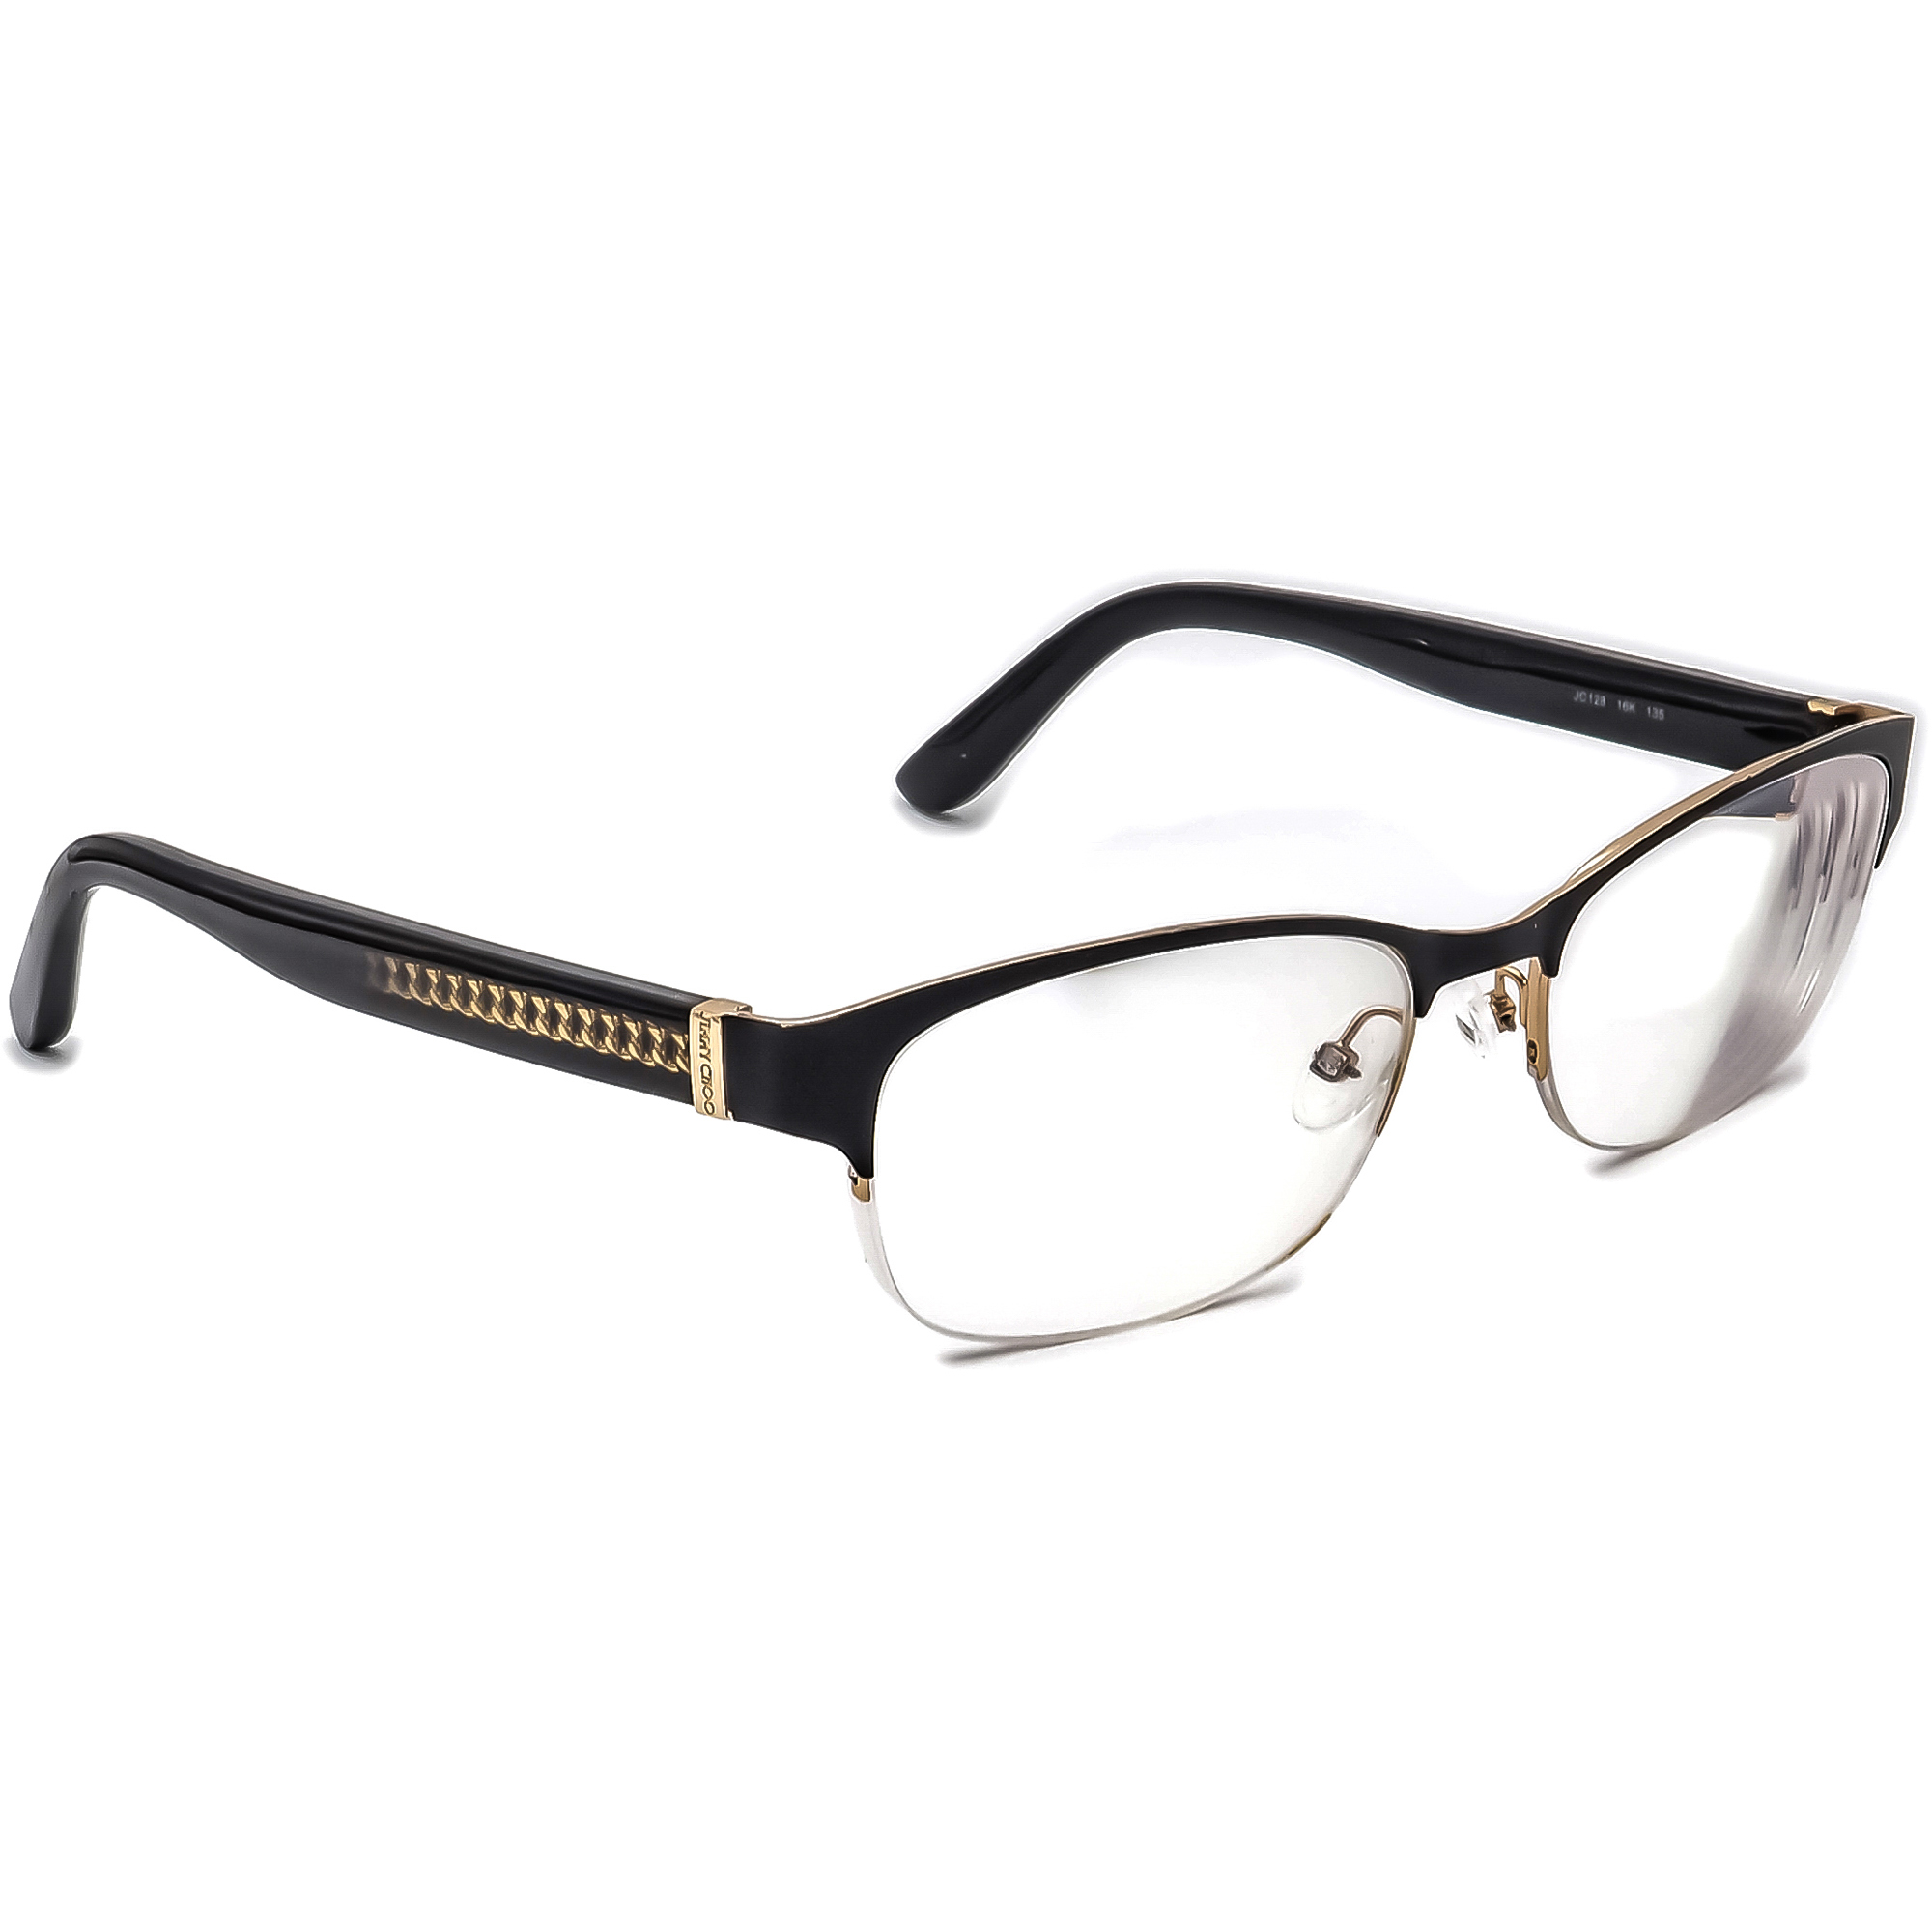 Jimmy Choo JC 128 26K Eyeglasses